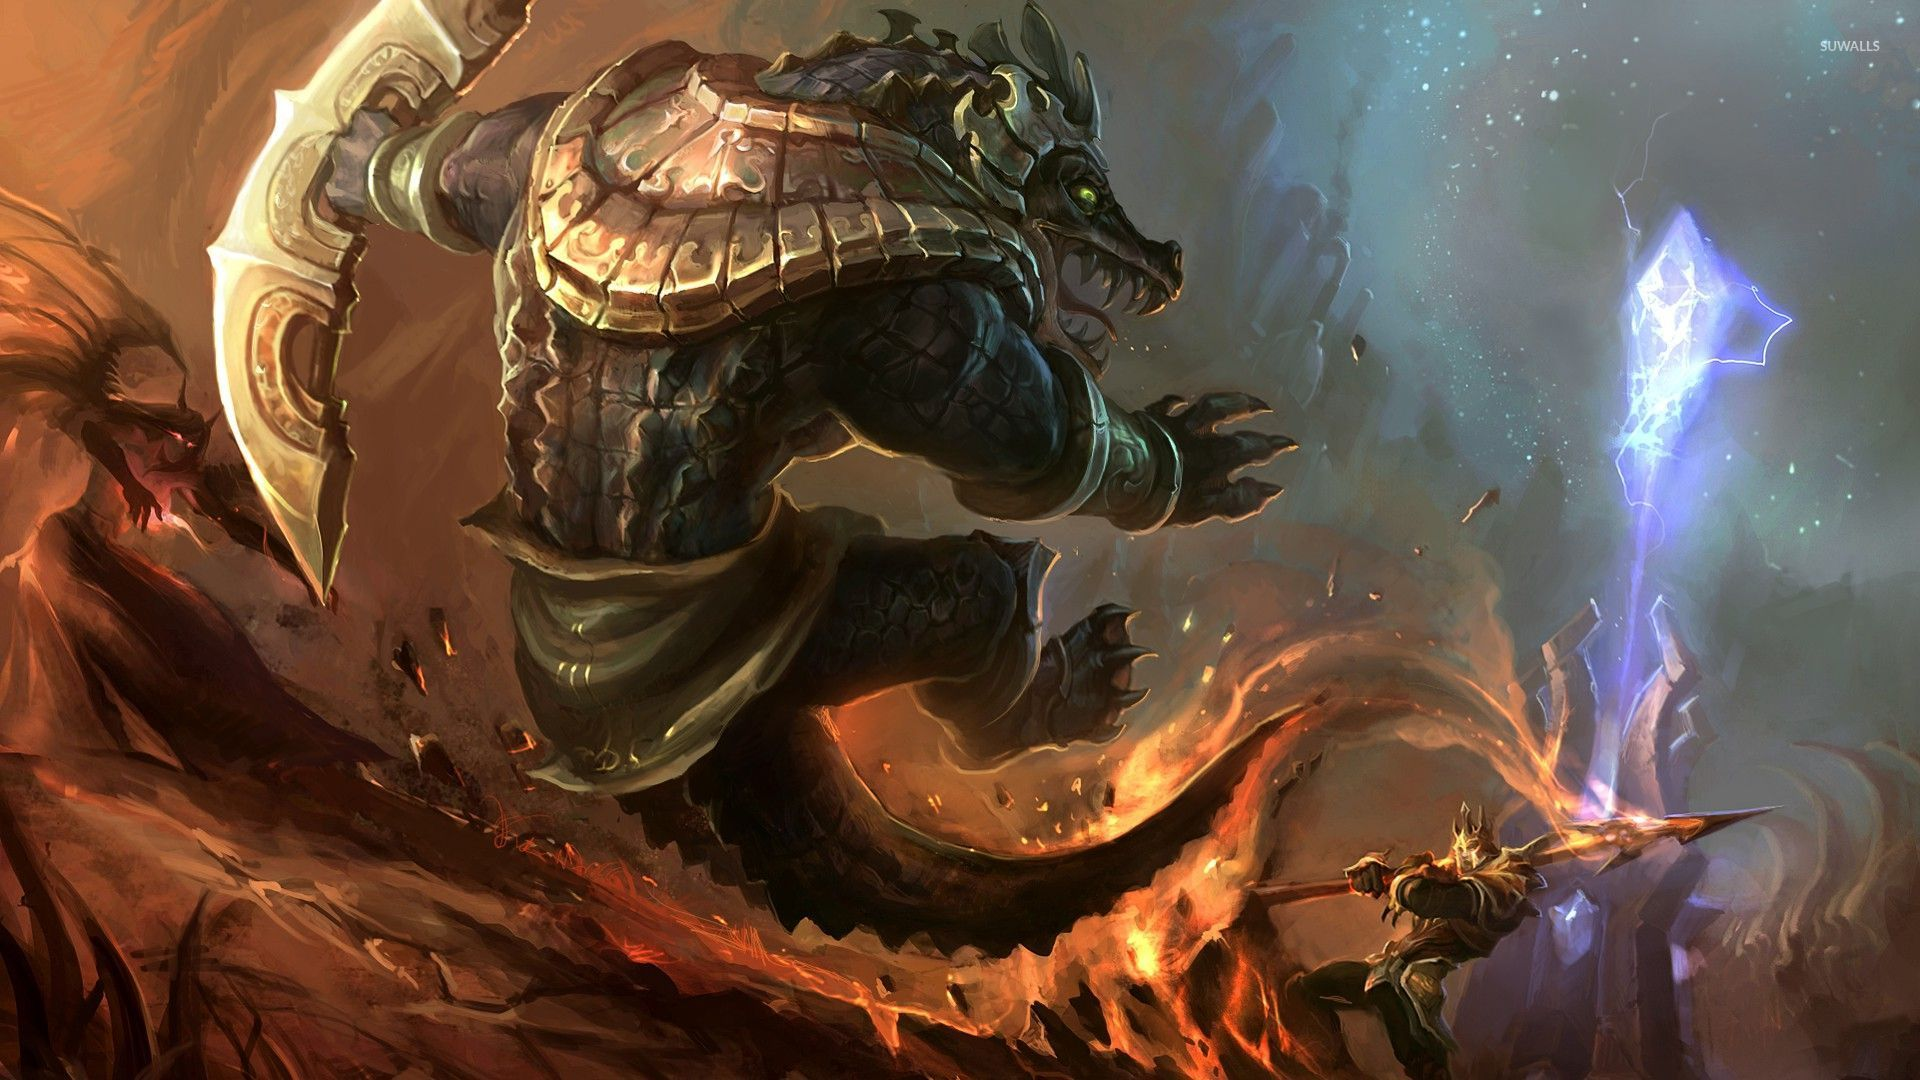 Warriors Fighting In League Of Legends Wallpaper Game Wallpapers